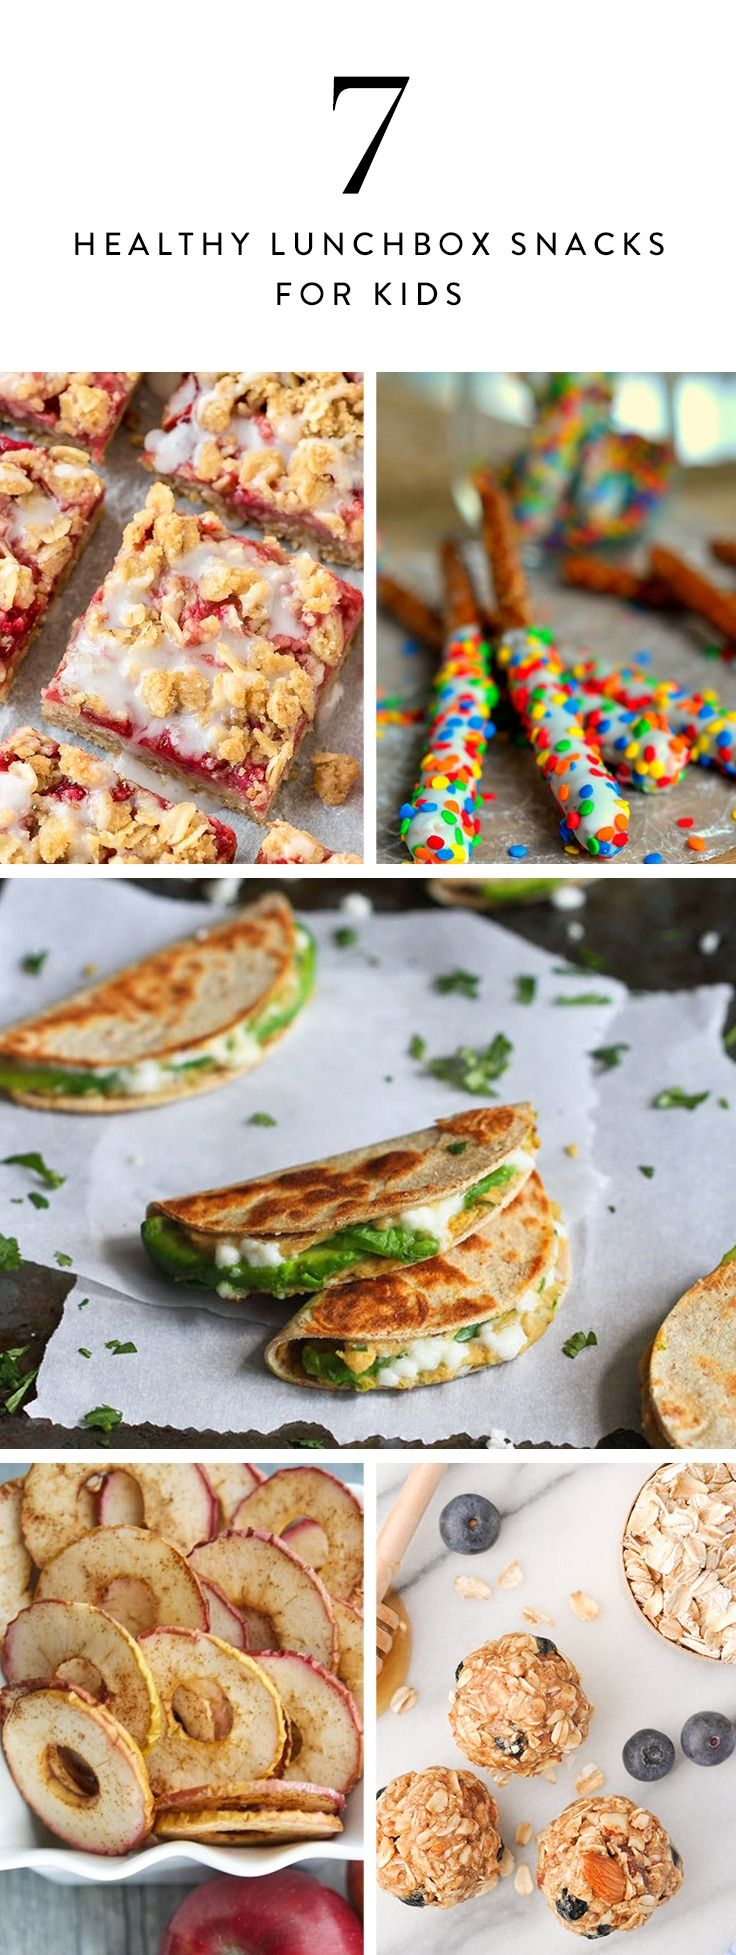 Add these homemade (and healthy) snacks to your kid's lunchbox. And make some extra for yourself, of course.